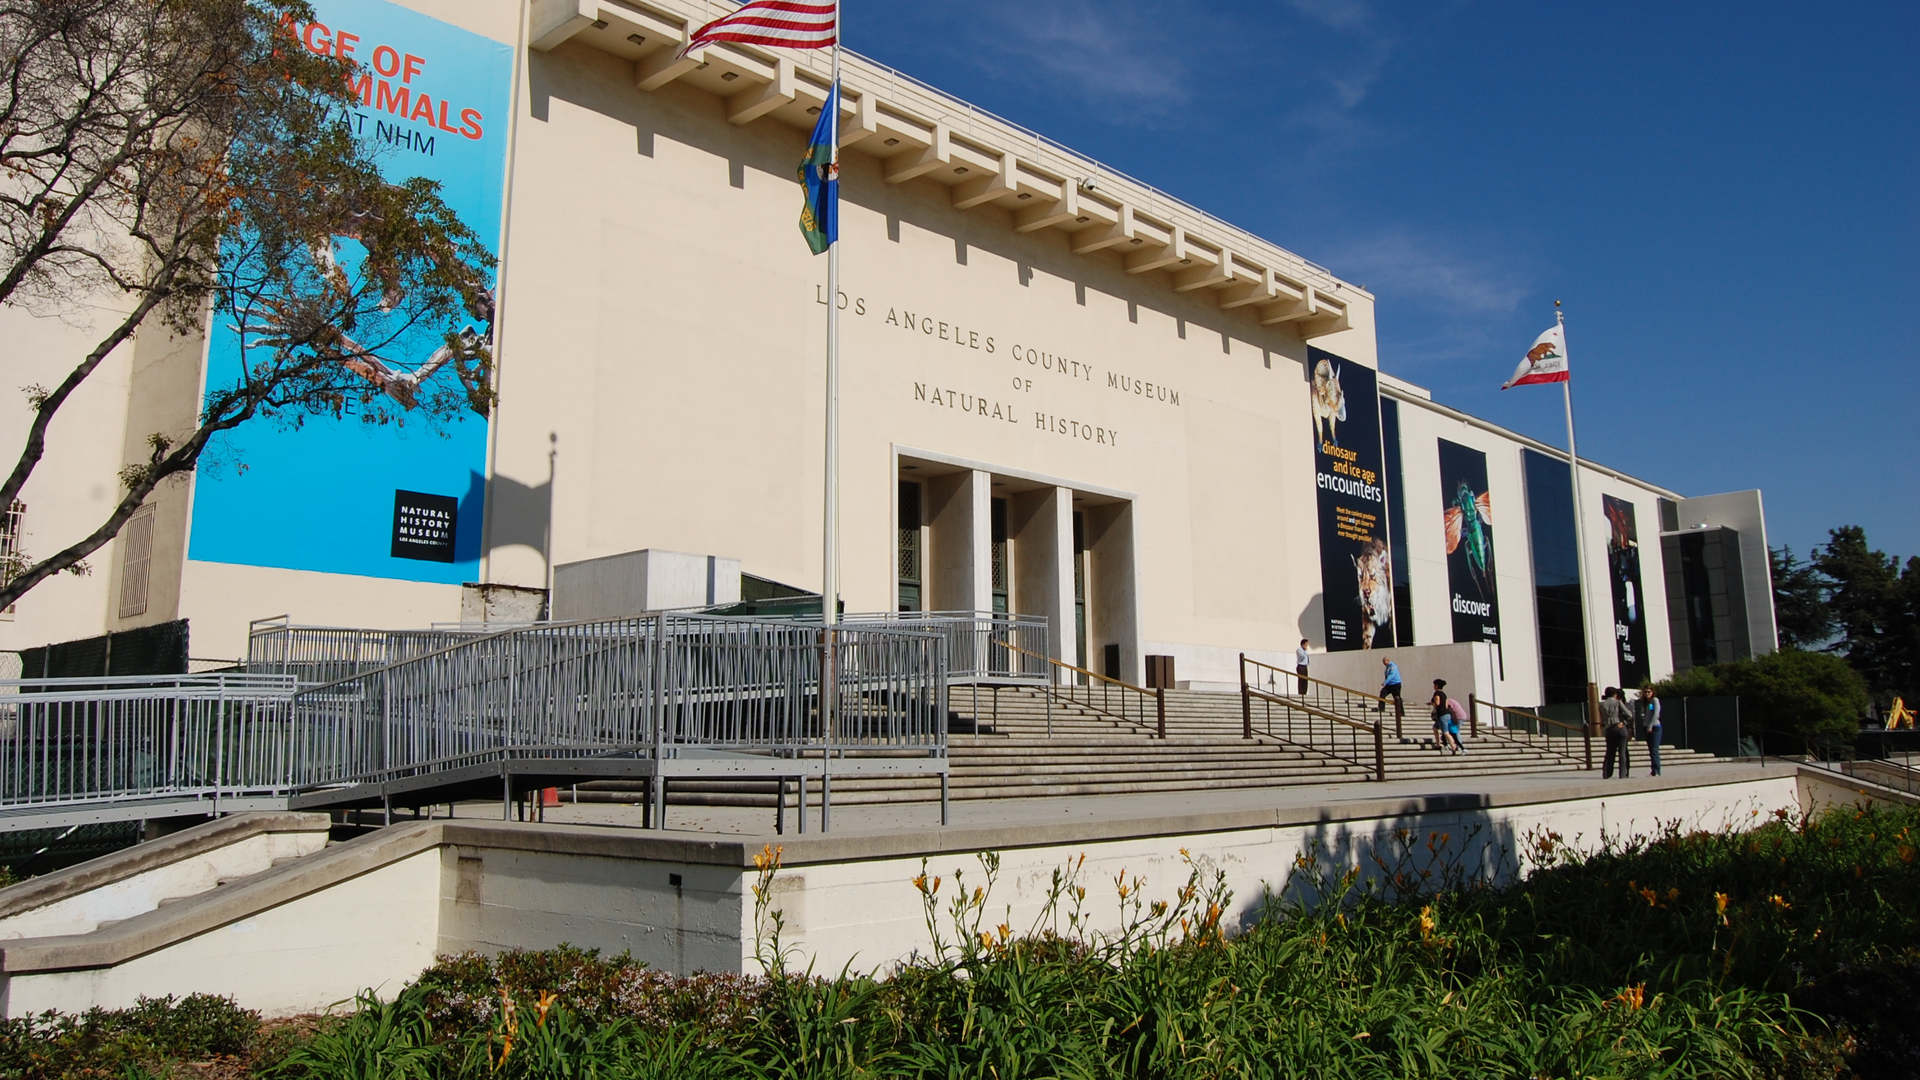 los angeles county museum of natural history building entrance before entering the dinosaur hall